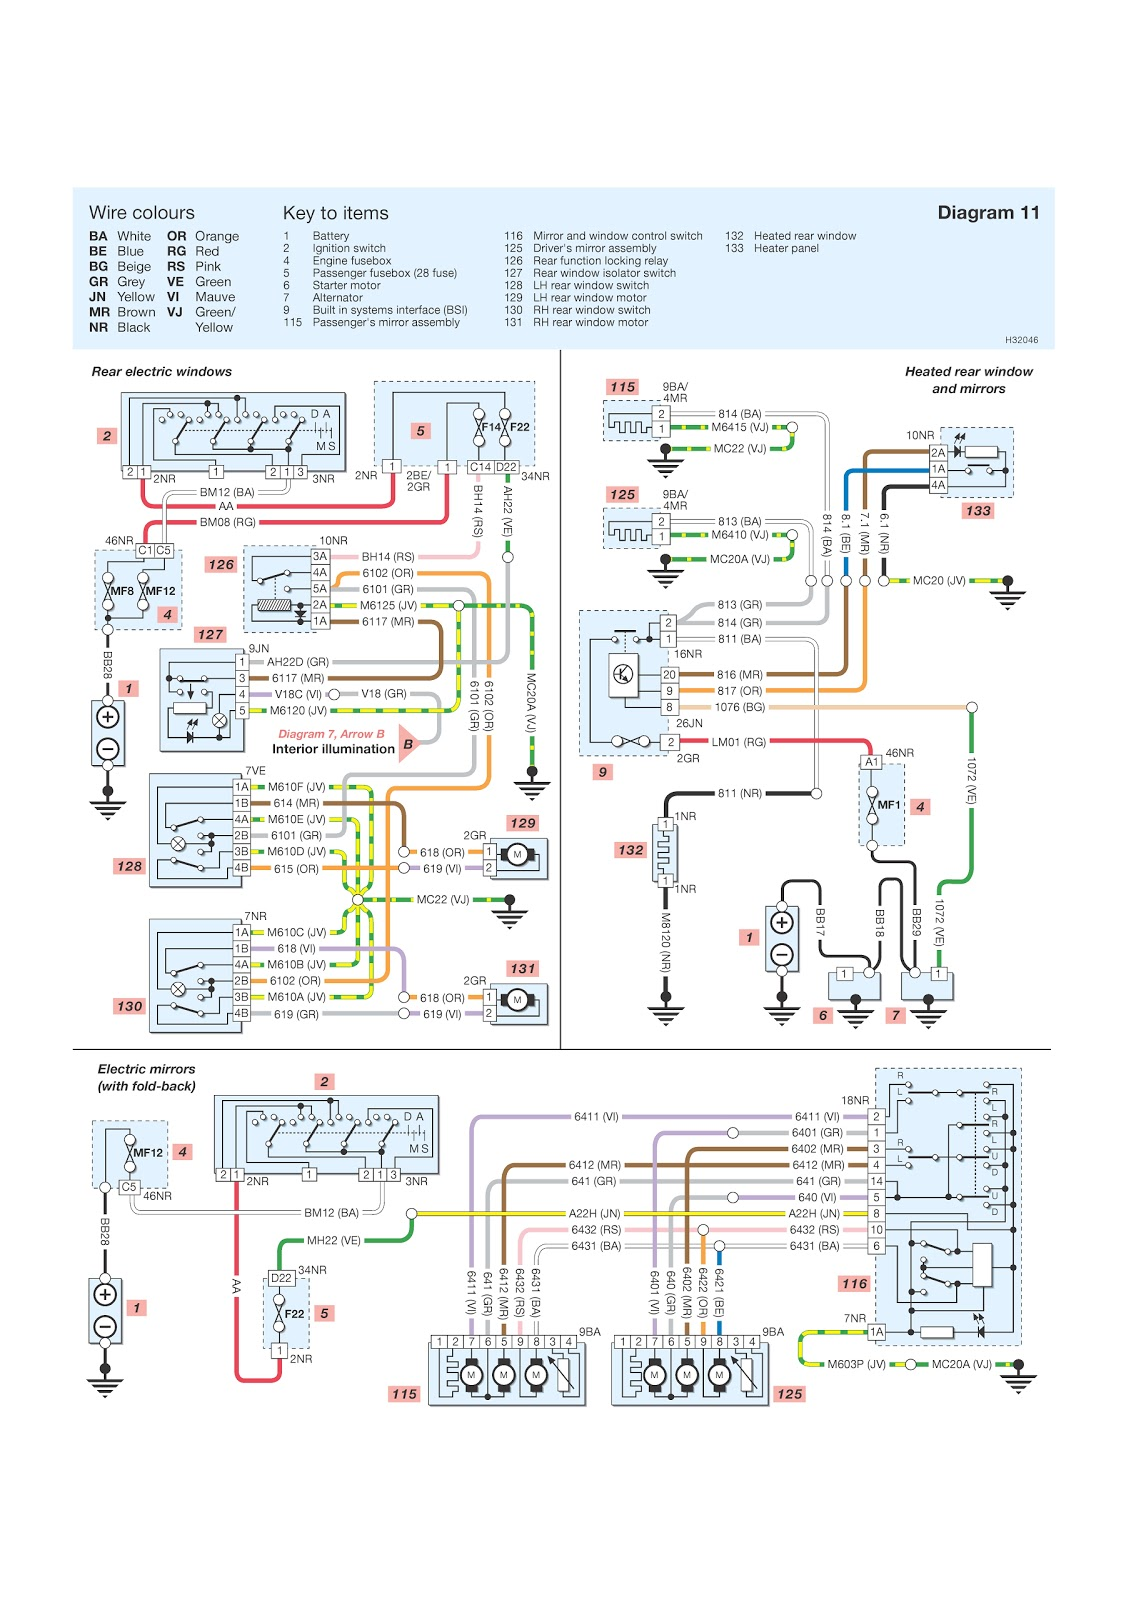 Charming peugeot 206 wiring diagram for central door locking amusing peugeot radio wiring diagrams images best image wire cheapraybanclubmaster Gallery